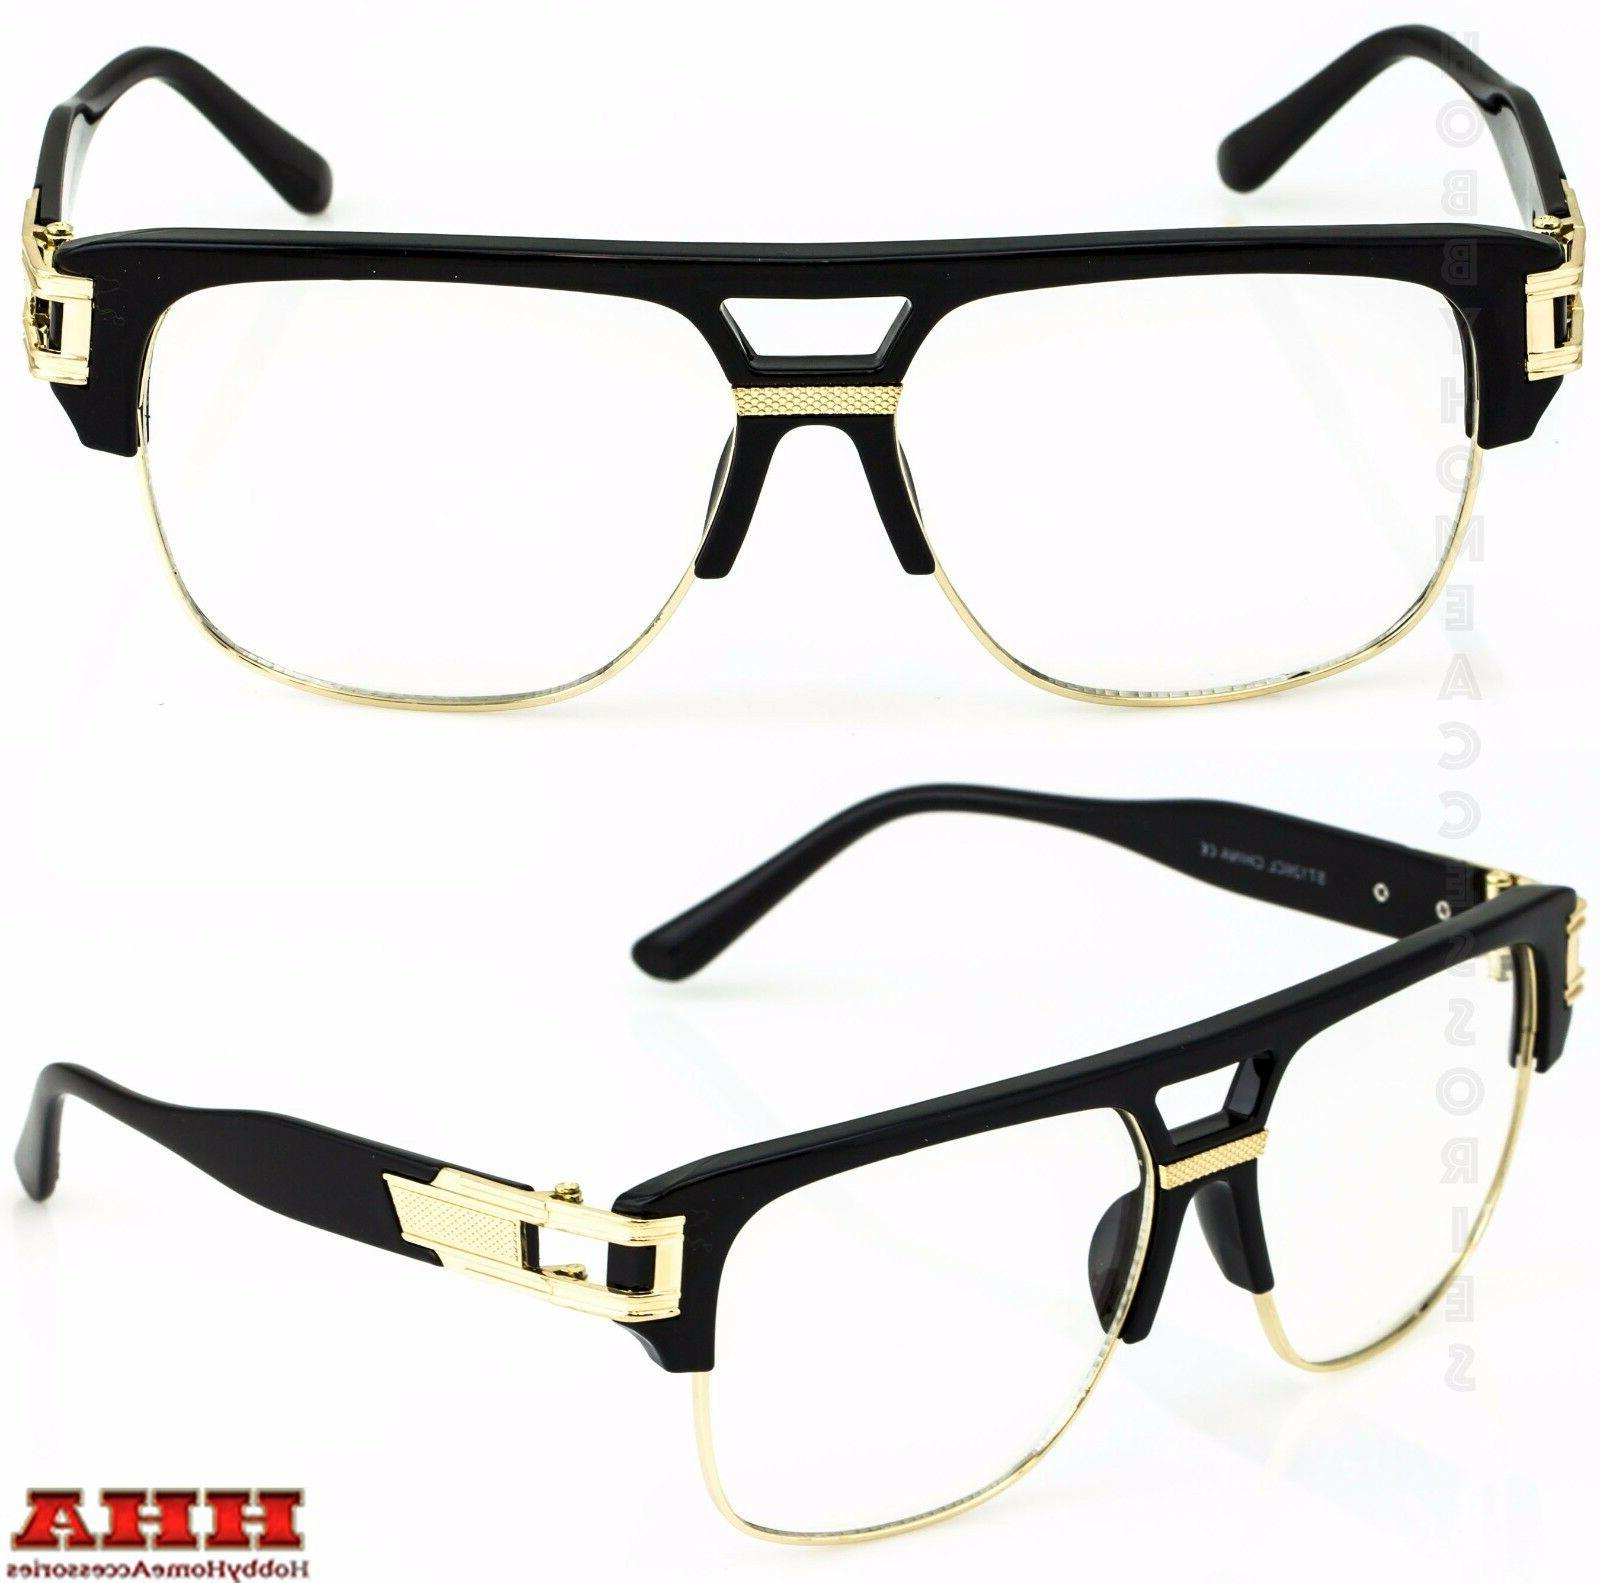 VINTAGE RETRO CLASSIC Hip Hop Style Clear Lens Eye Glasses G